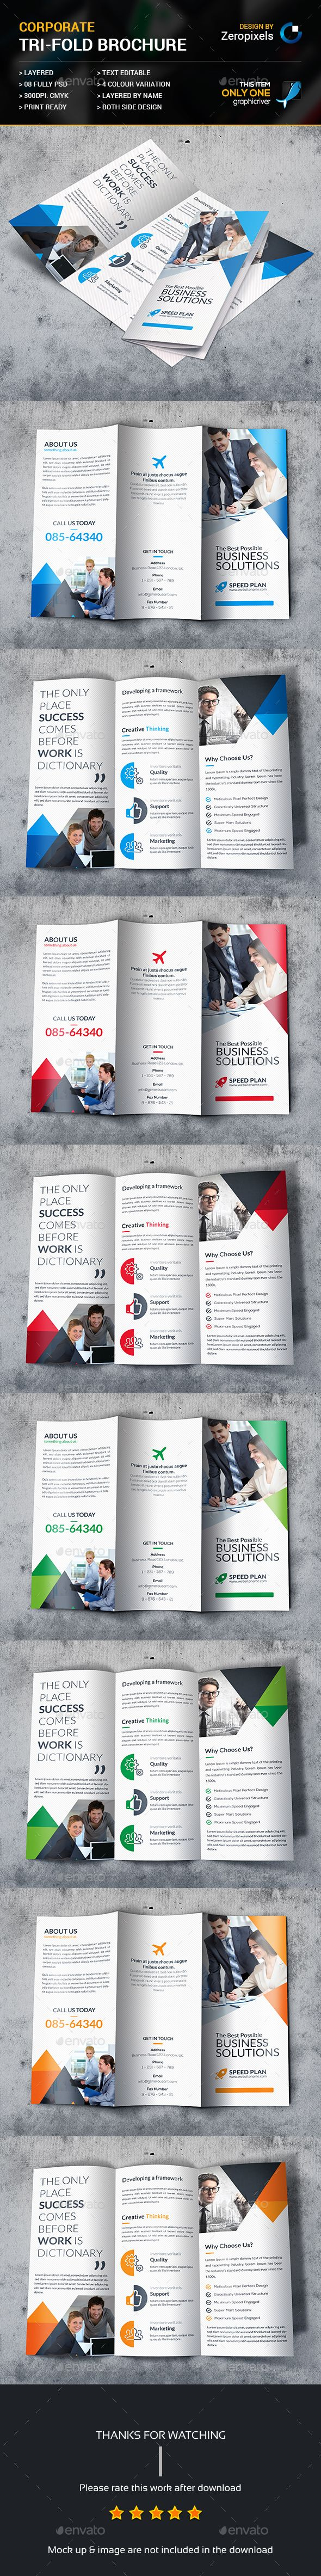 Corporate Trifold Brochure Template PSD. Download here: http://graphicriver.net/item/corporate-trifold-brochure/15351455?ref=ksioks